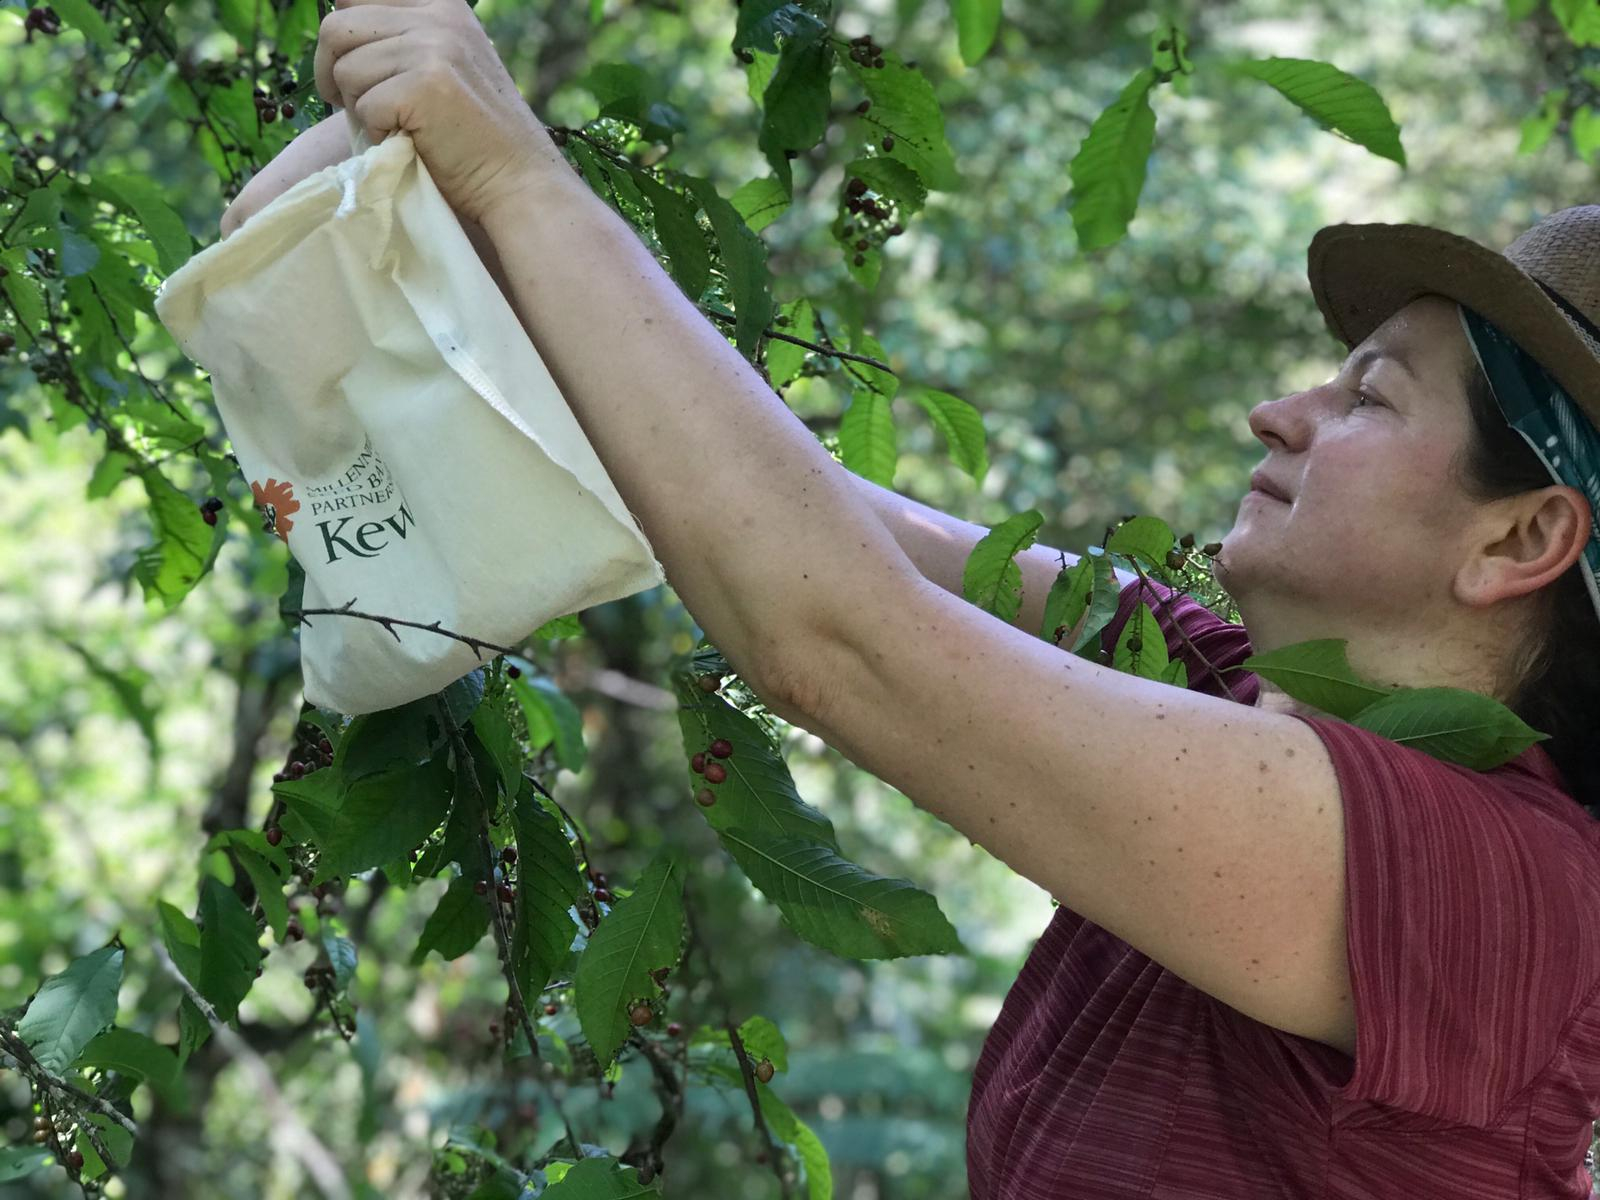 Dr Ulian reaches up to put a seed collection from a tree into a bag for future banking